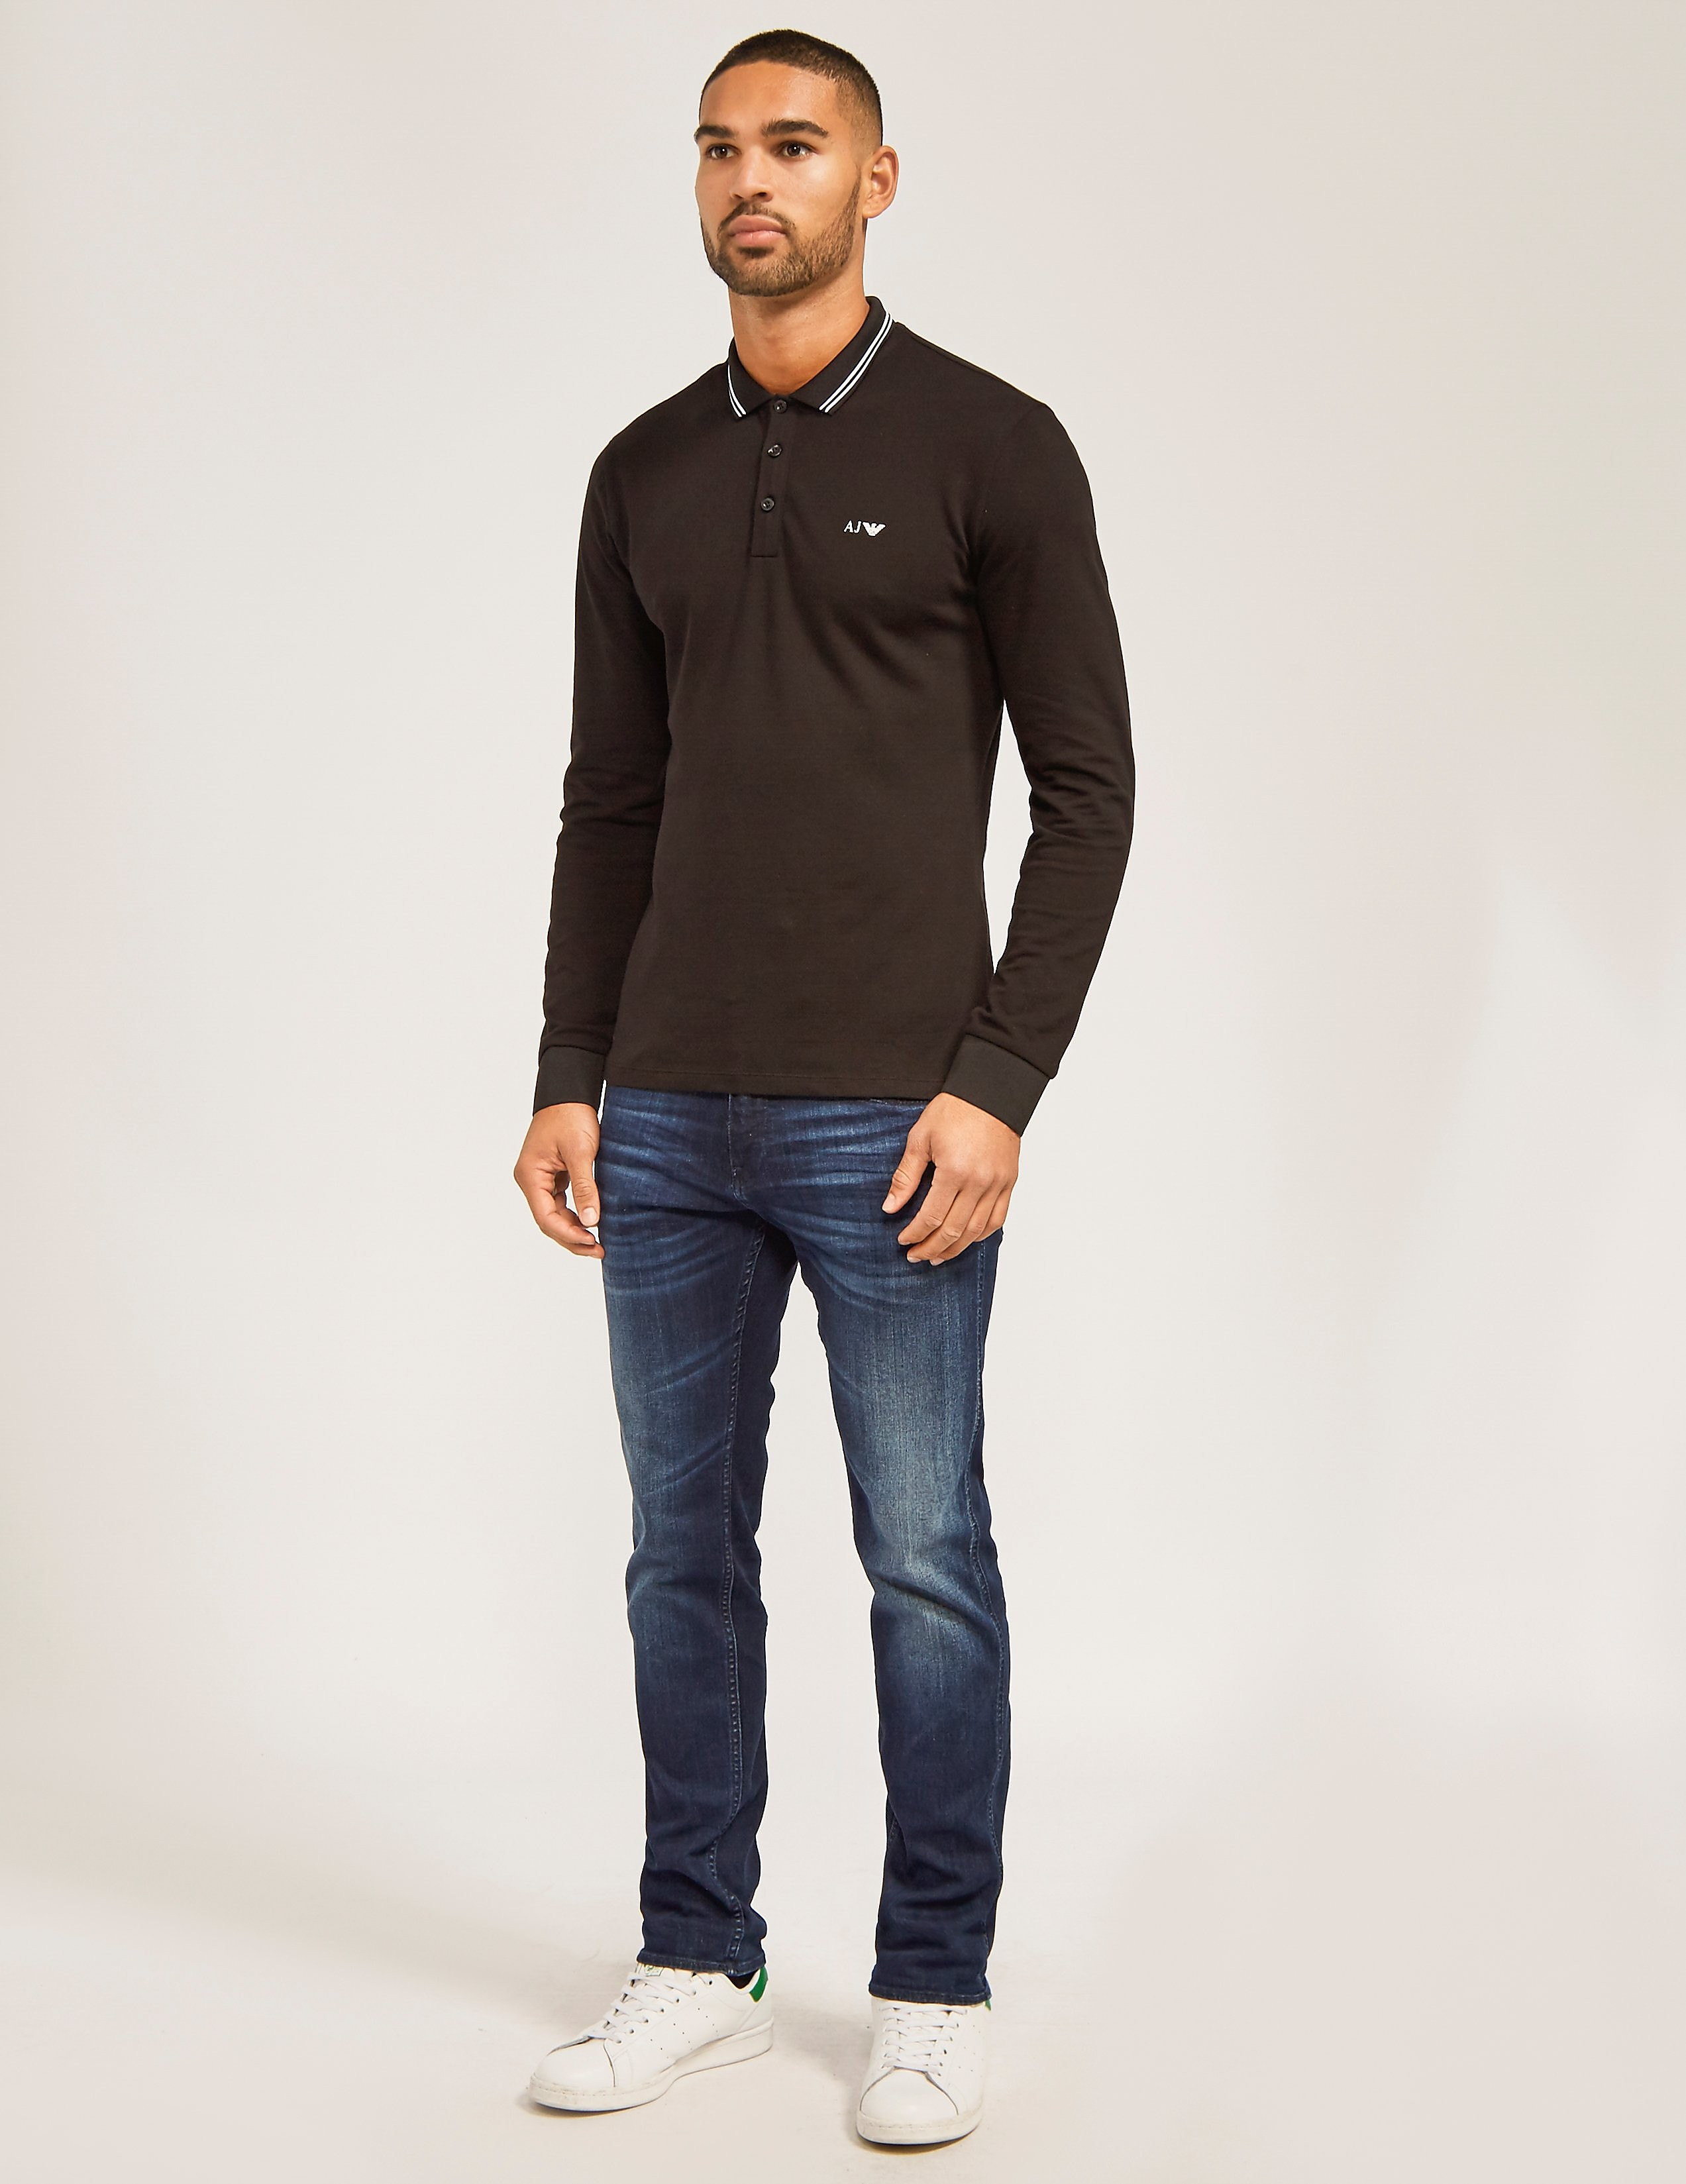 Armani Jeans Mod Fit Long Sleeve Polo Shirt